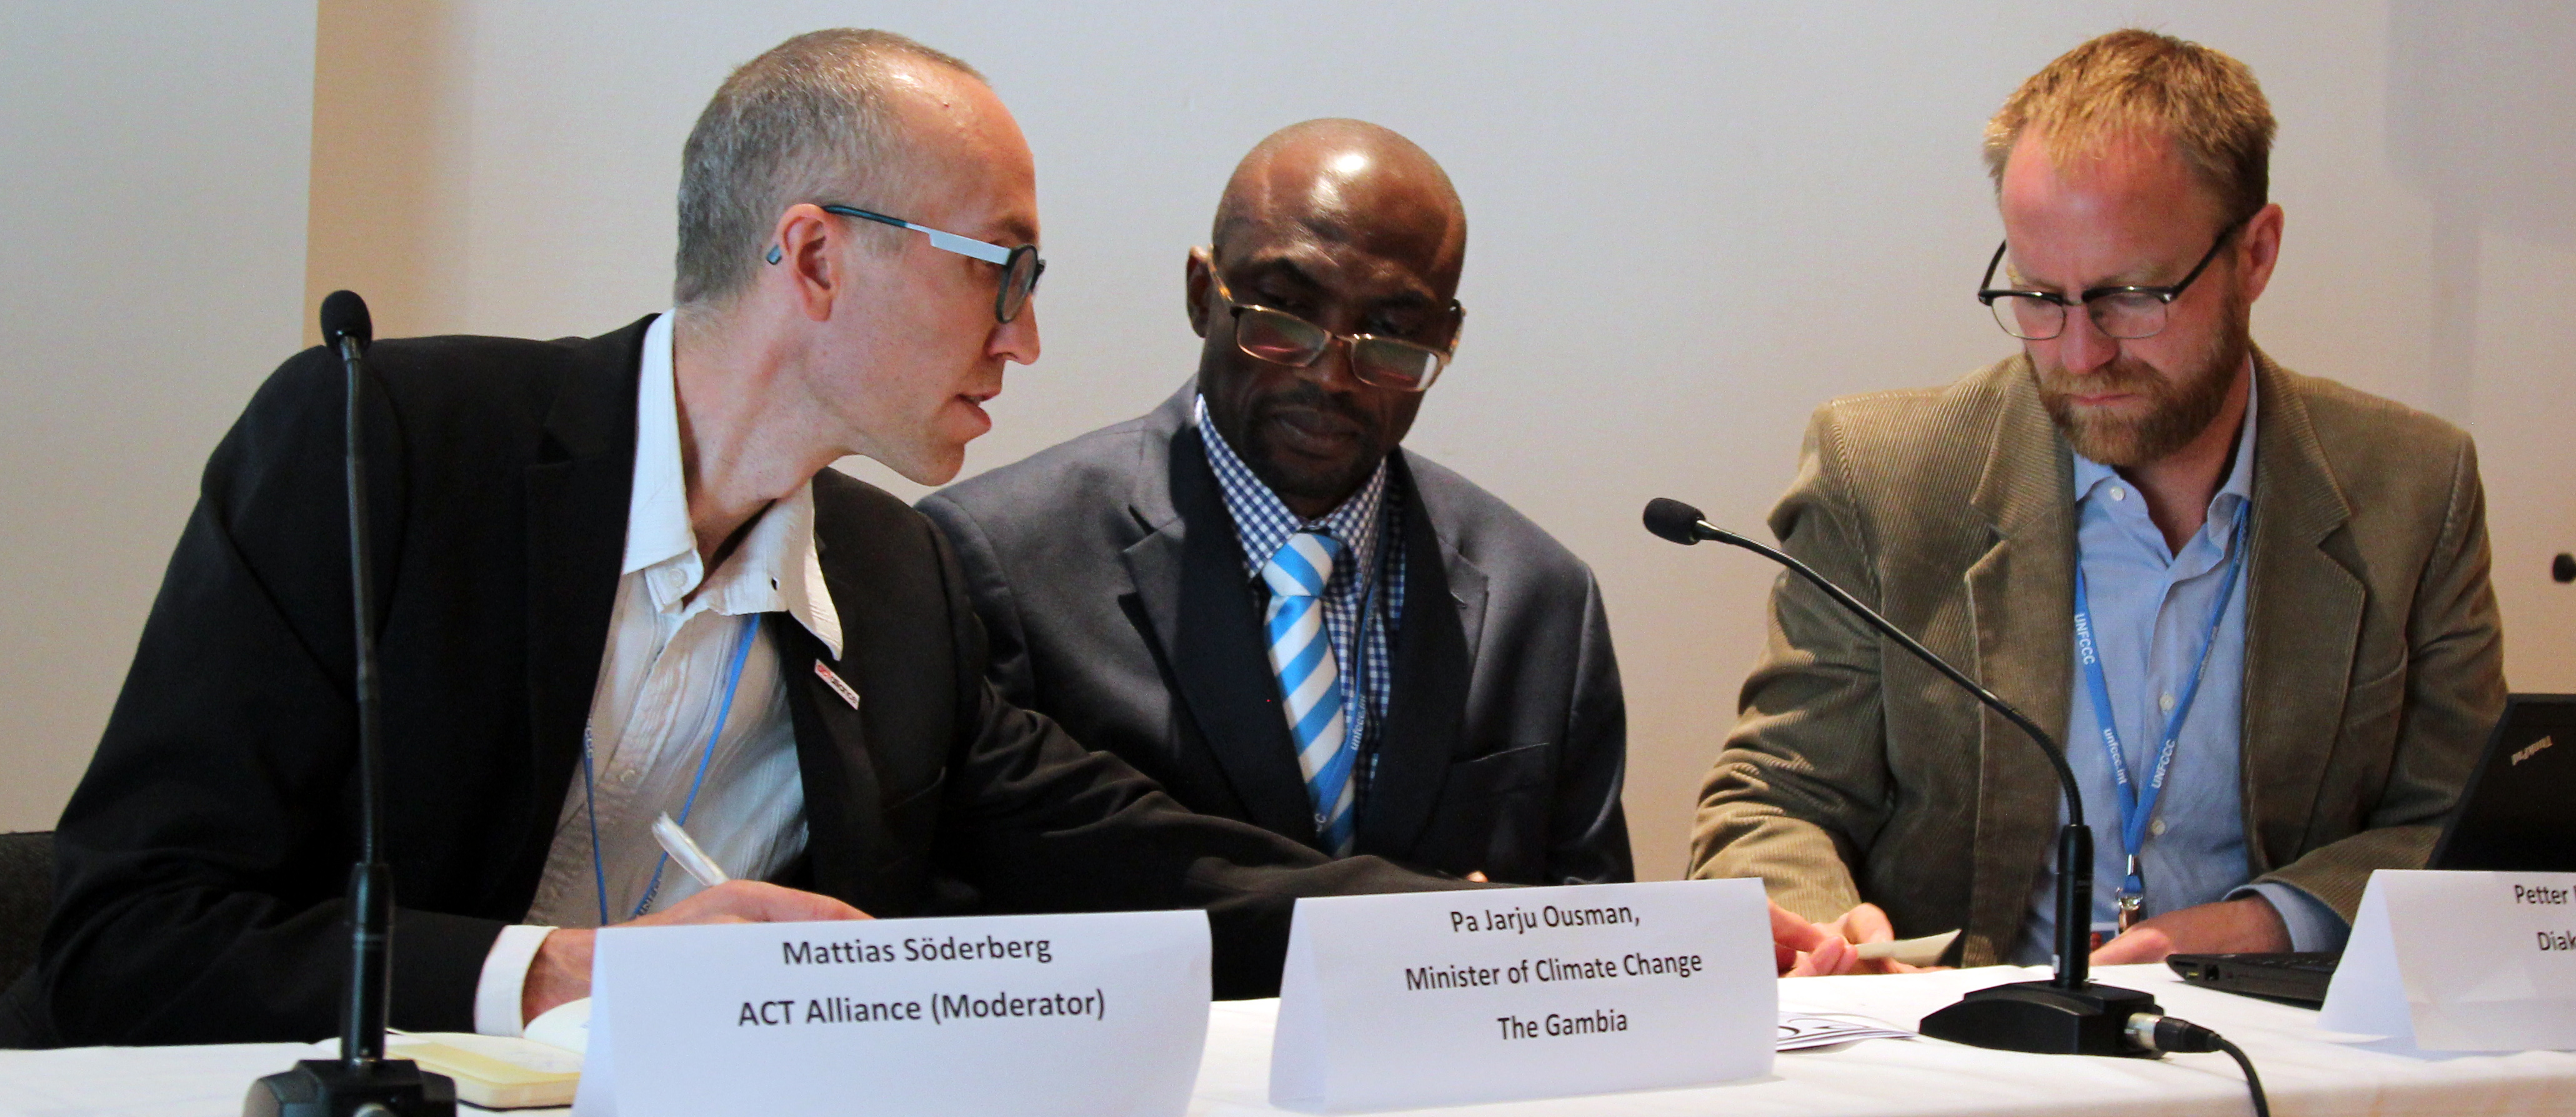 From R-L: Petter Lydén; Pa Ousman Jarju, Minister of Climate Change, Water and Wildlife, the Gambia; Mattias Söderberg, ACT Alliance. Photo: IISD